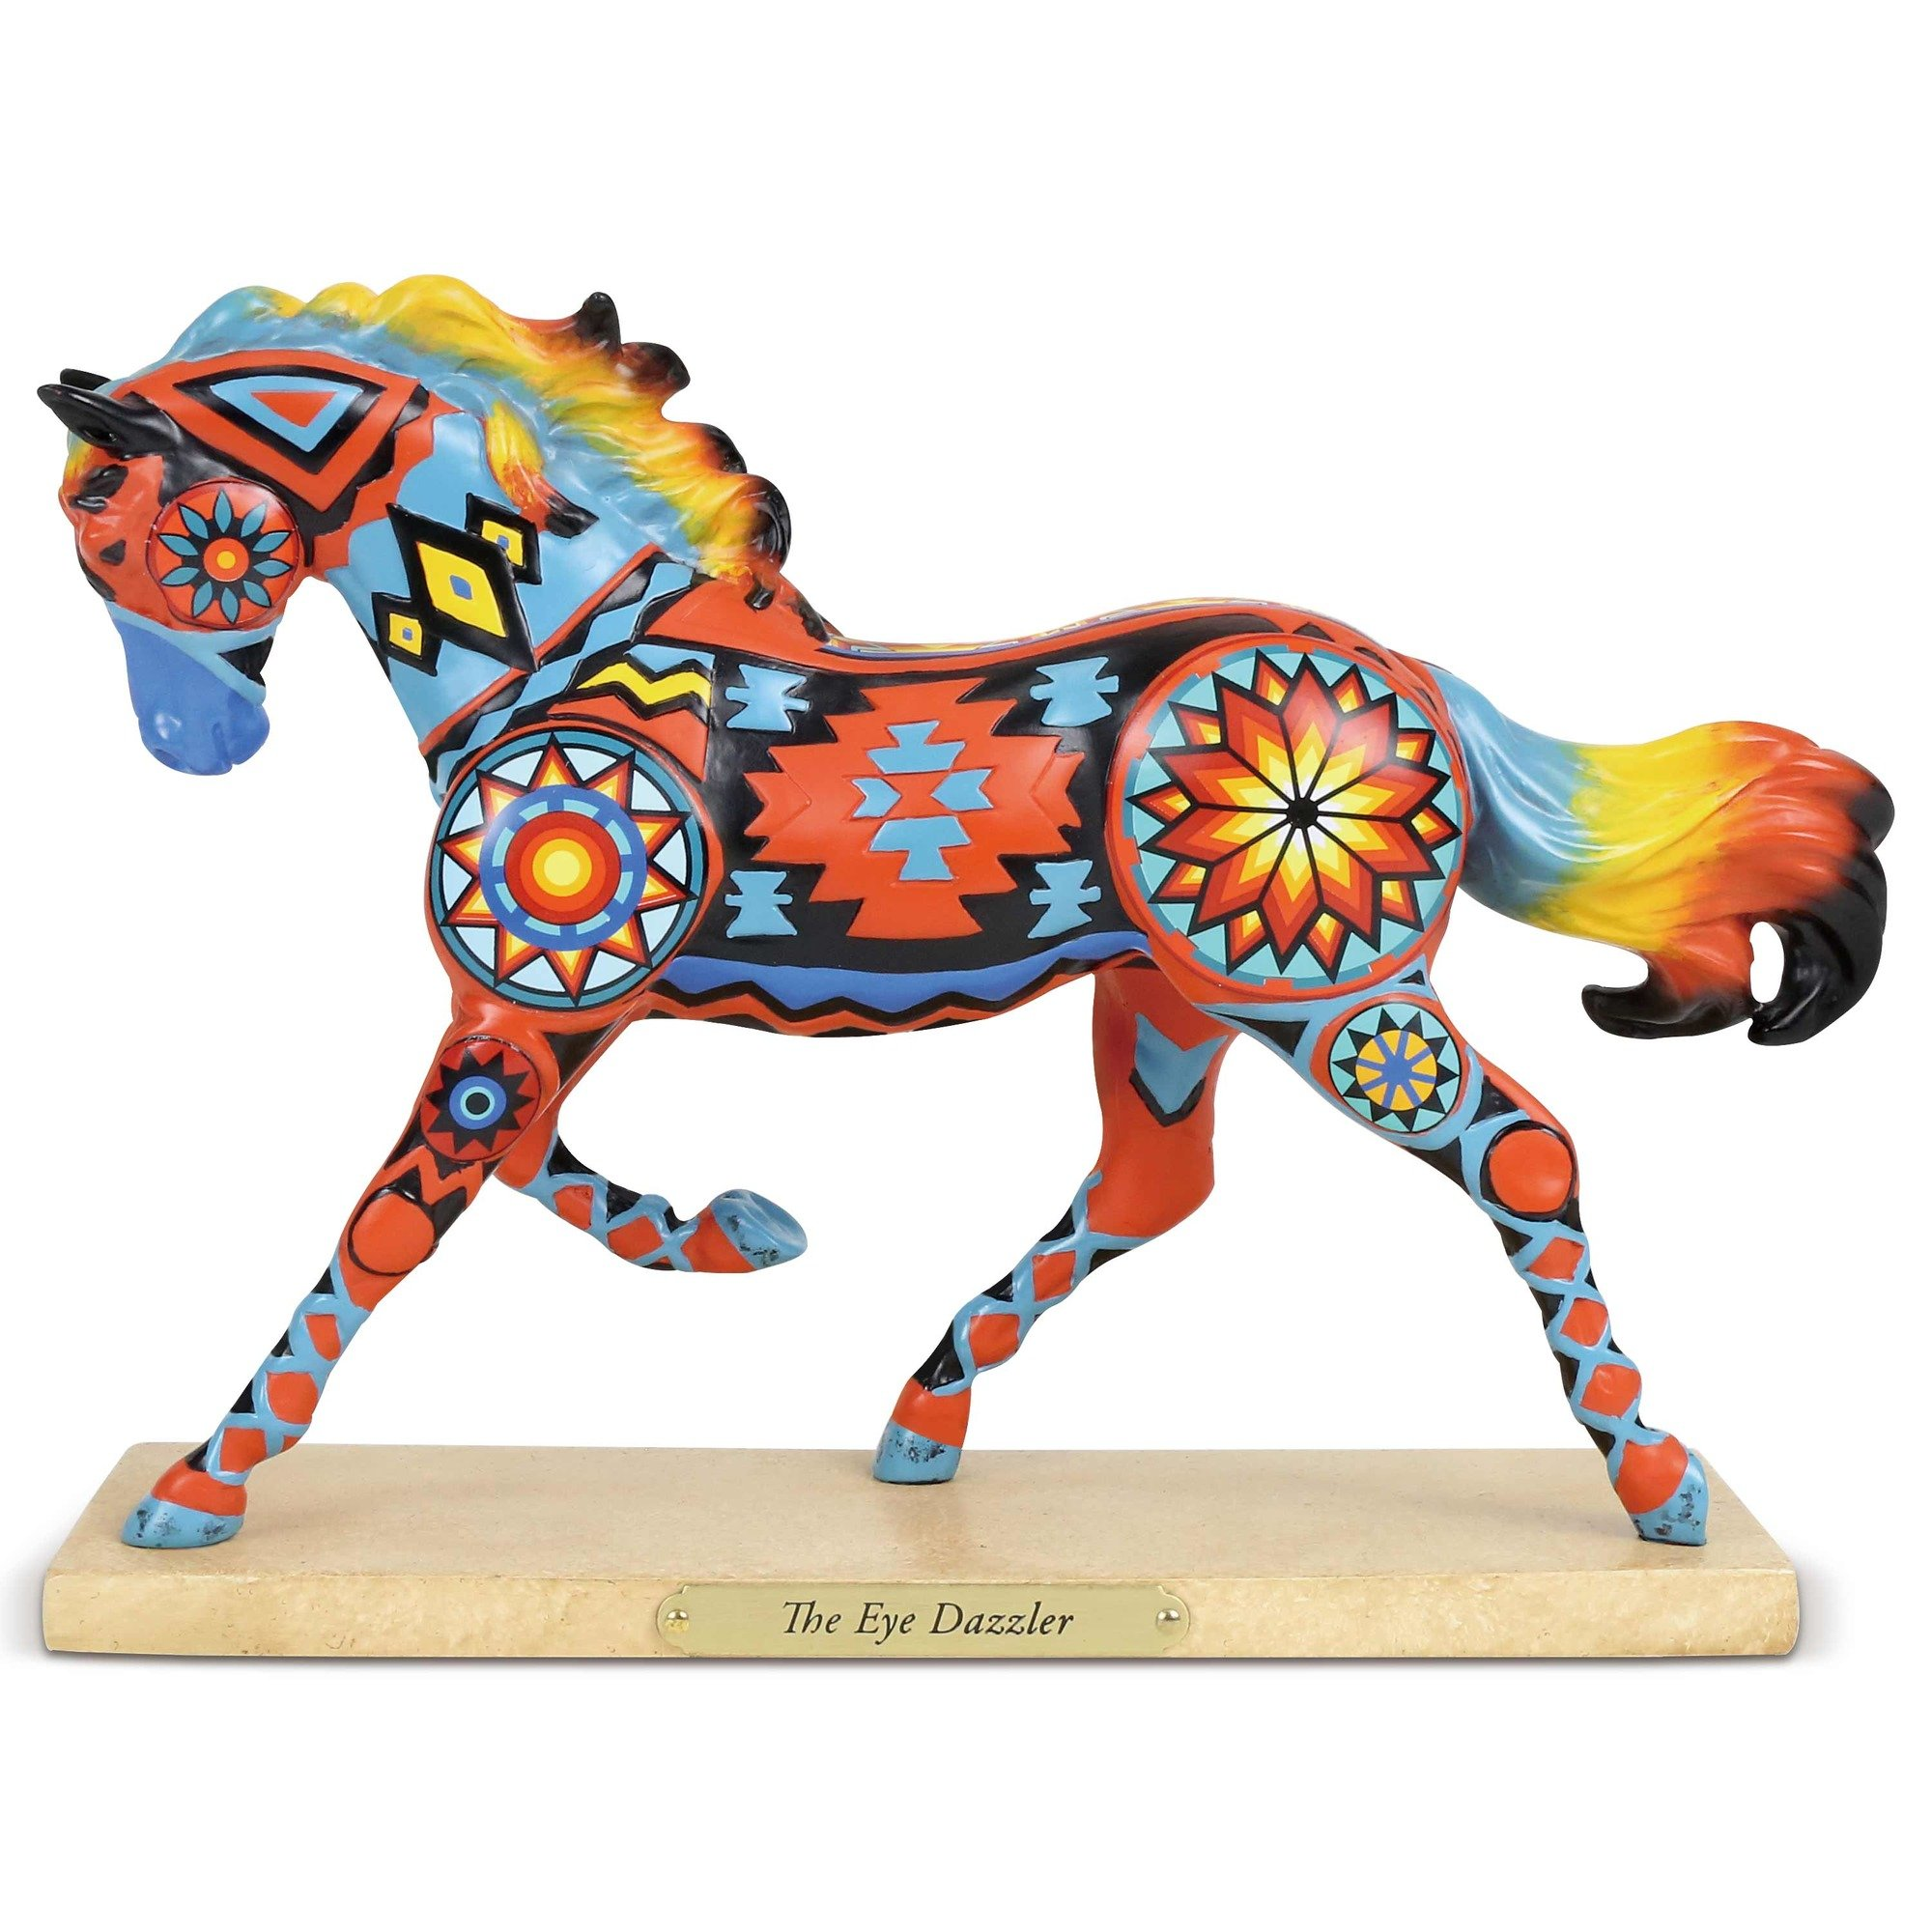 "Enesco Trail of Painted Ponies ""The Eye Dazzler"" Stone Resin Figurine, 6.5'', Multicolor"